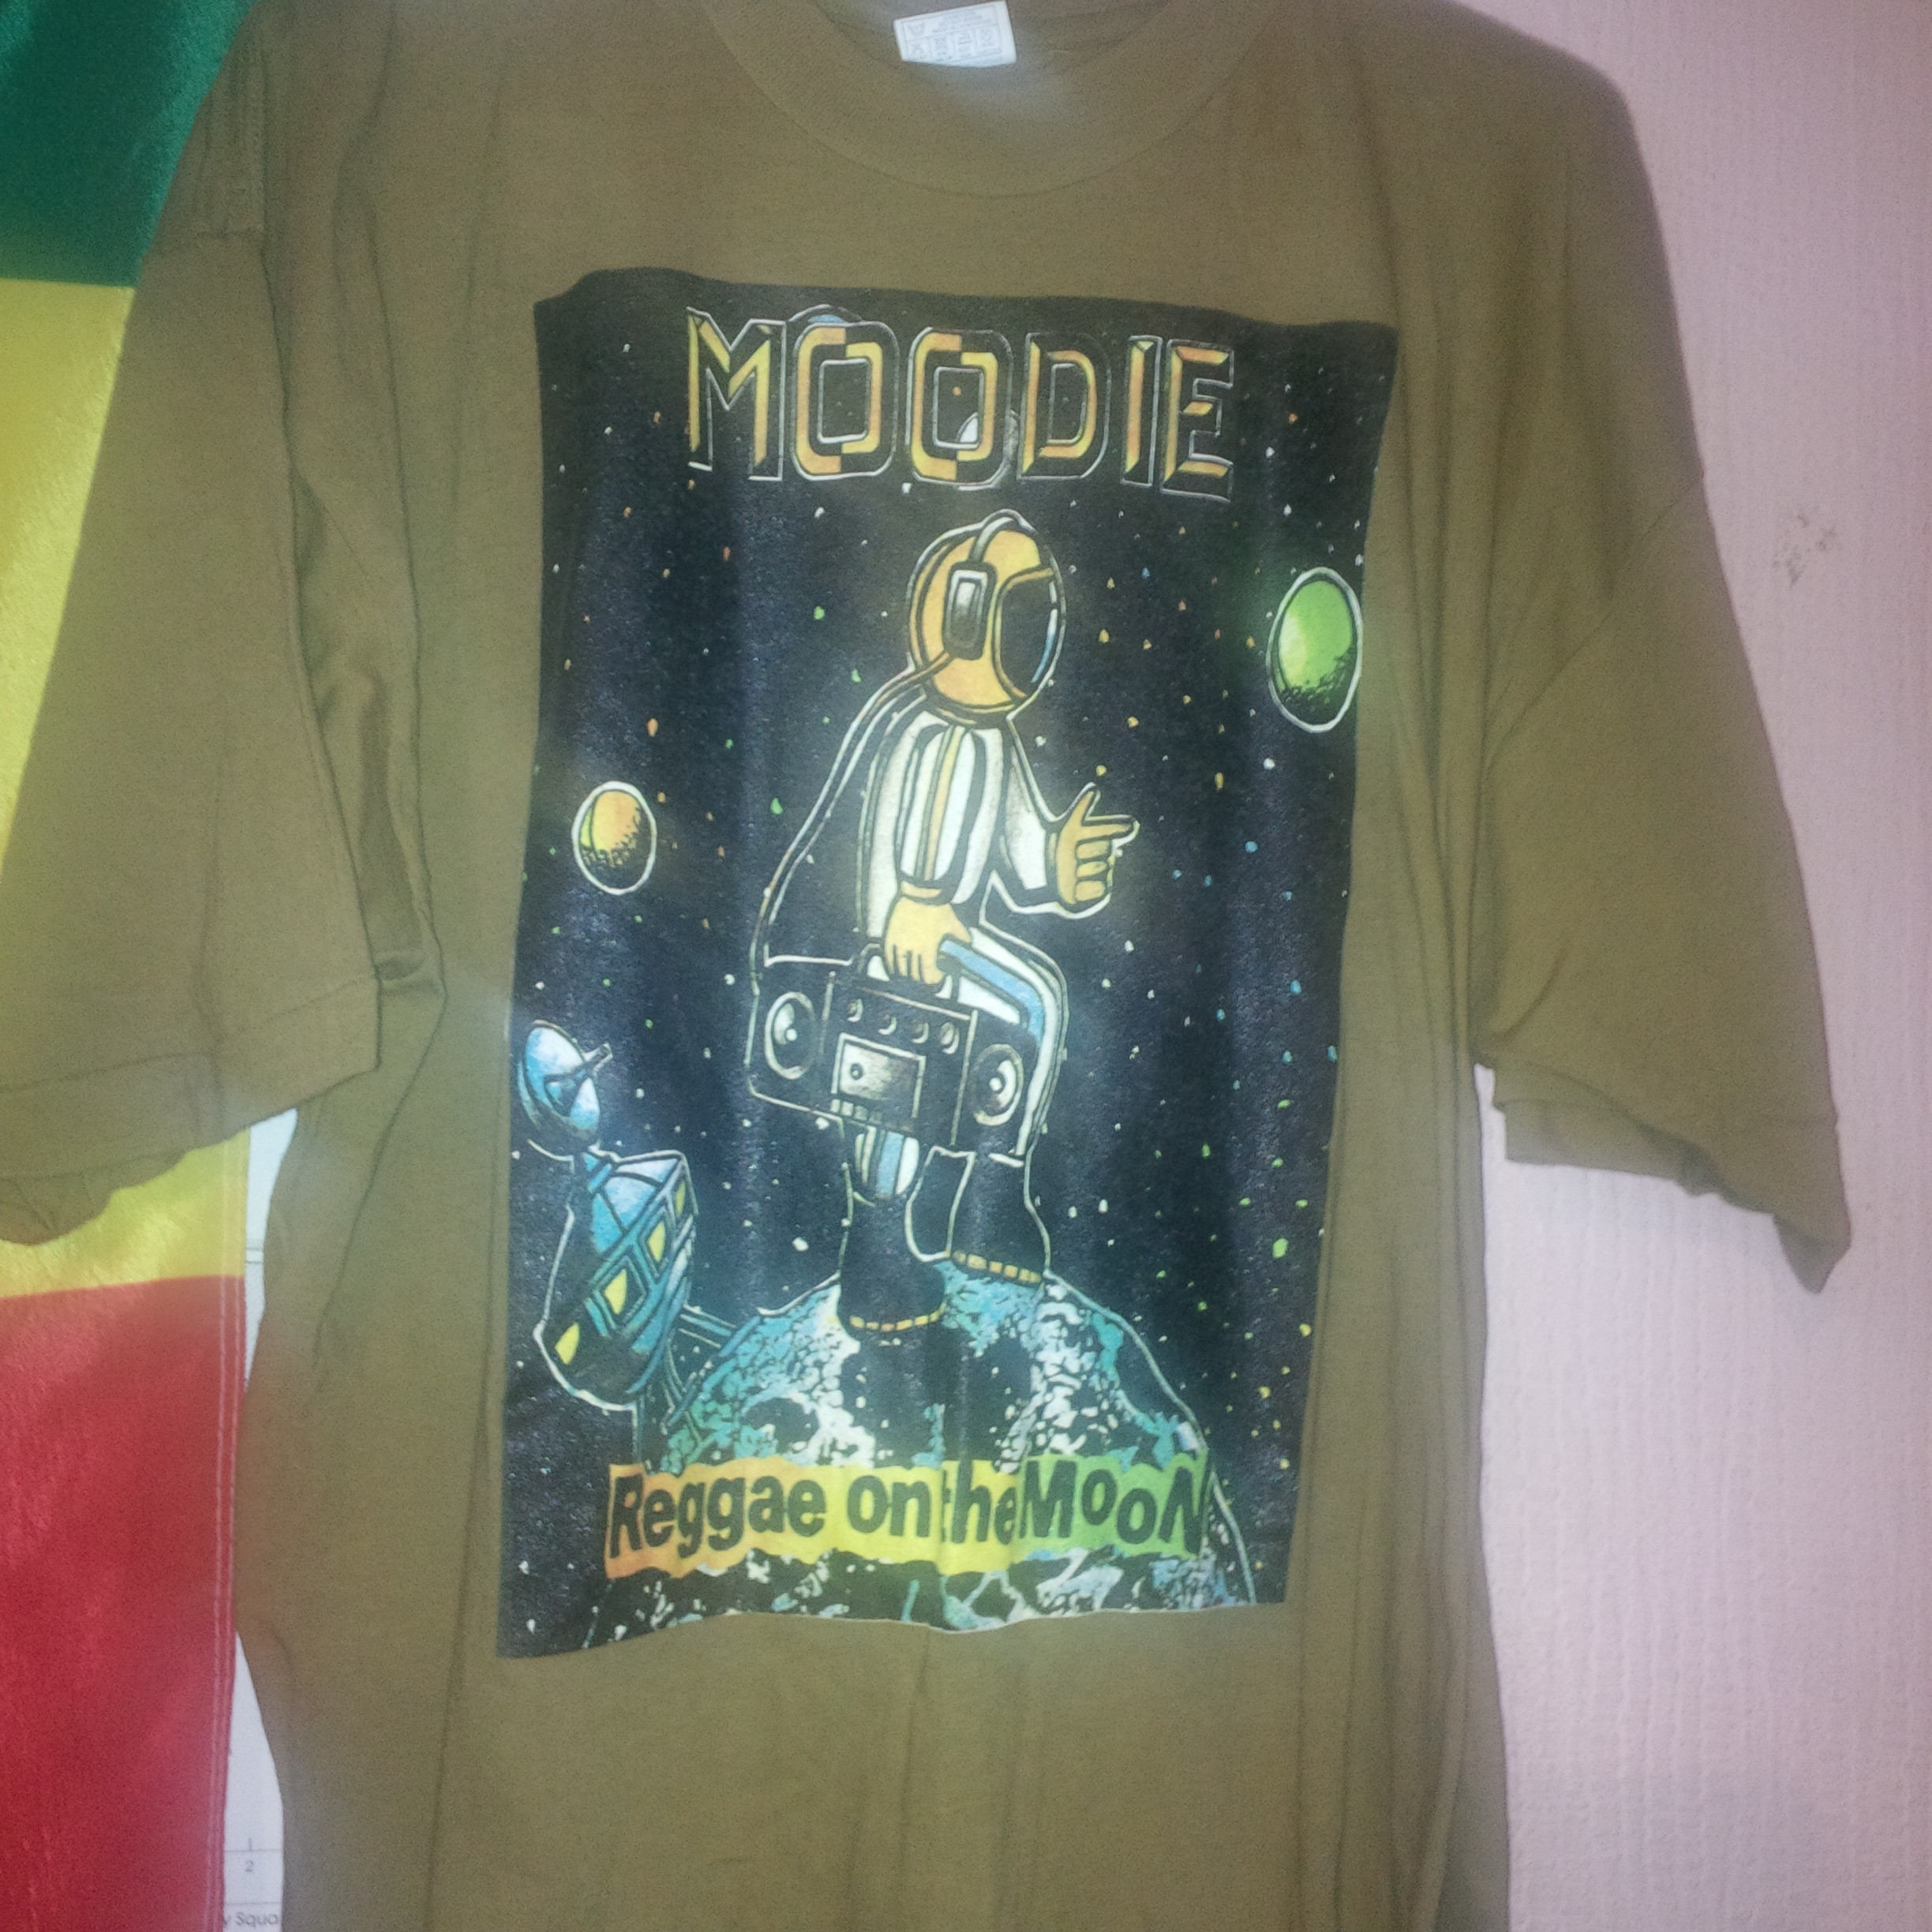 f2a2c1b6 Reggae On The Moon tee shirt | Moodie Music